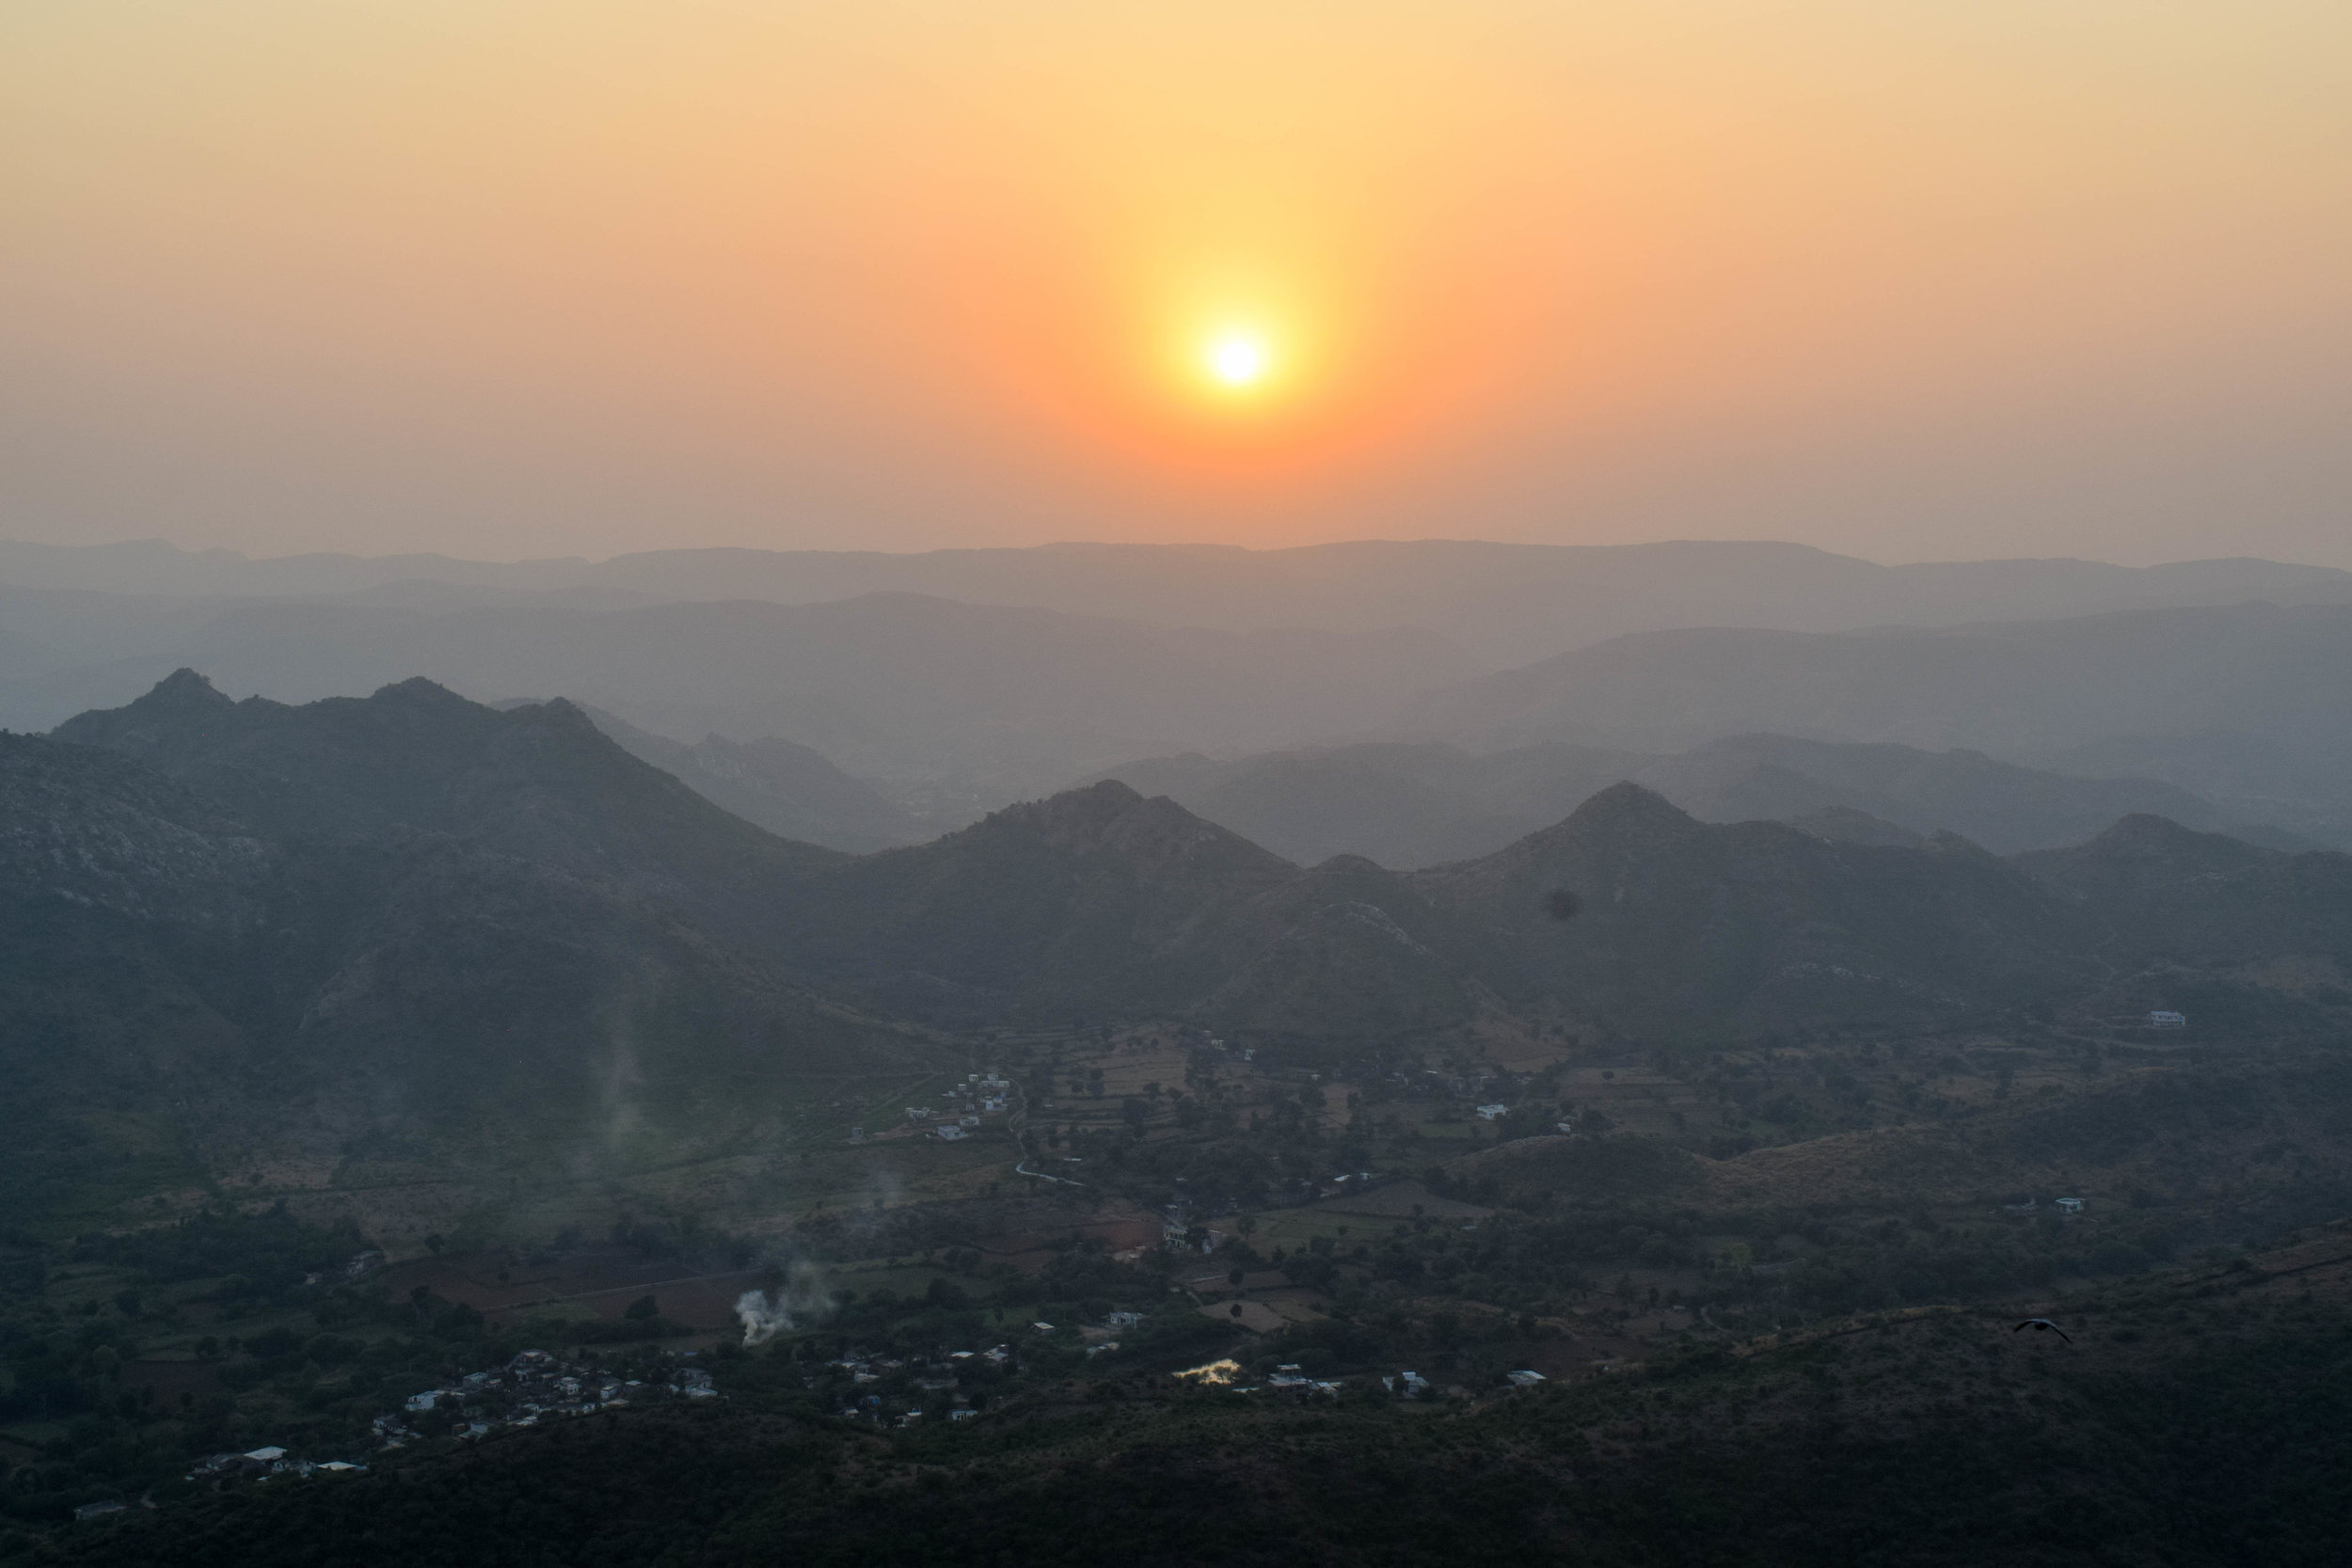 Sunset at the Monsoon Palace.